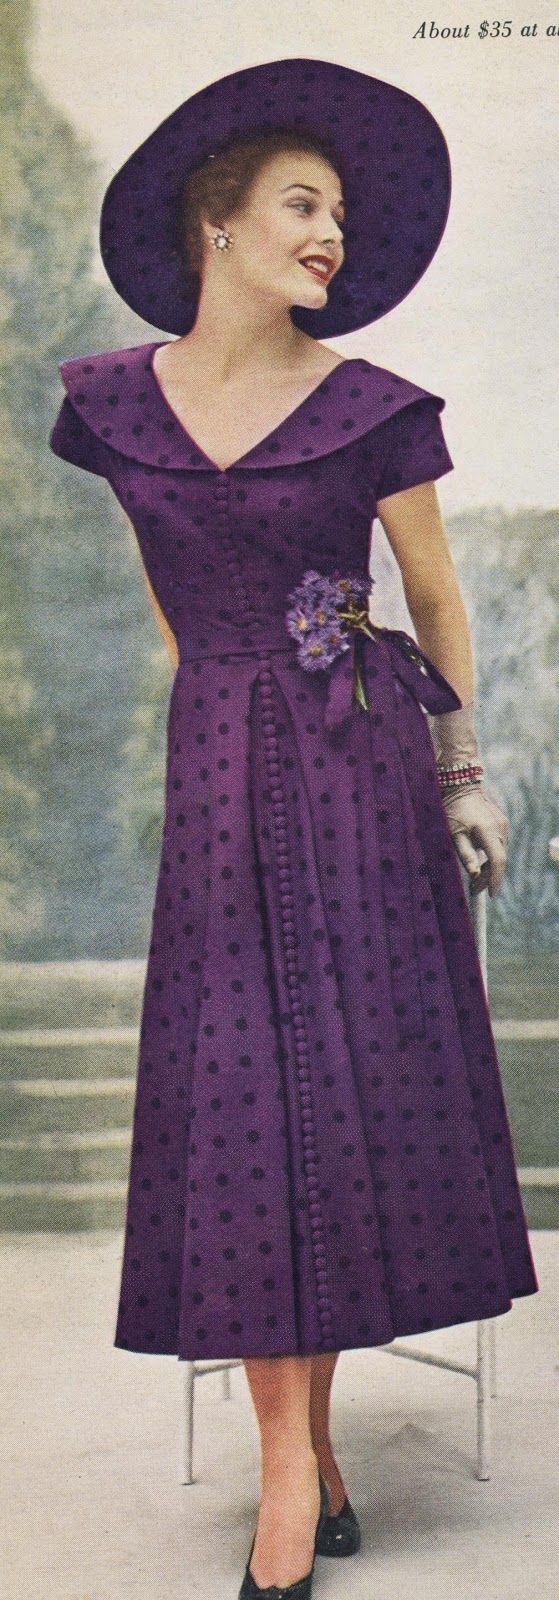 Dividing Vintage Moments : Vogue 1949 Ready for Part II ...